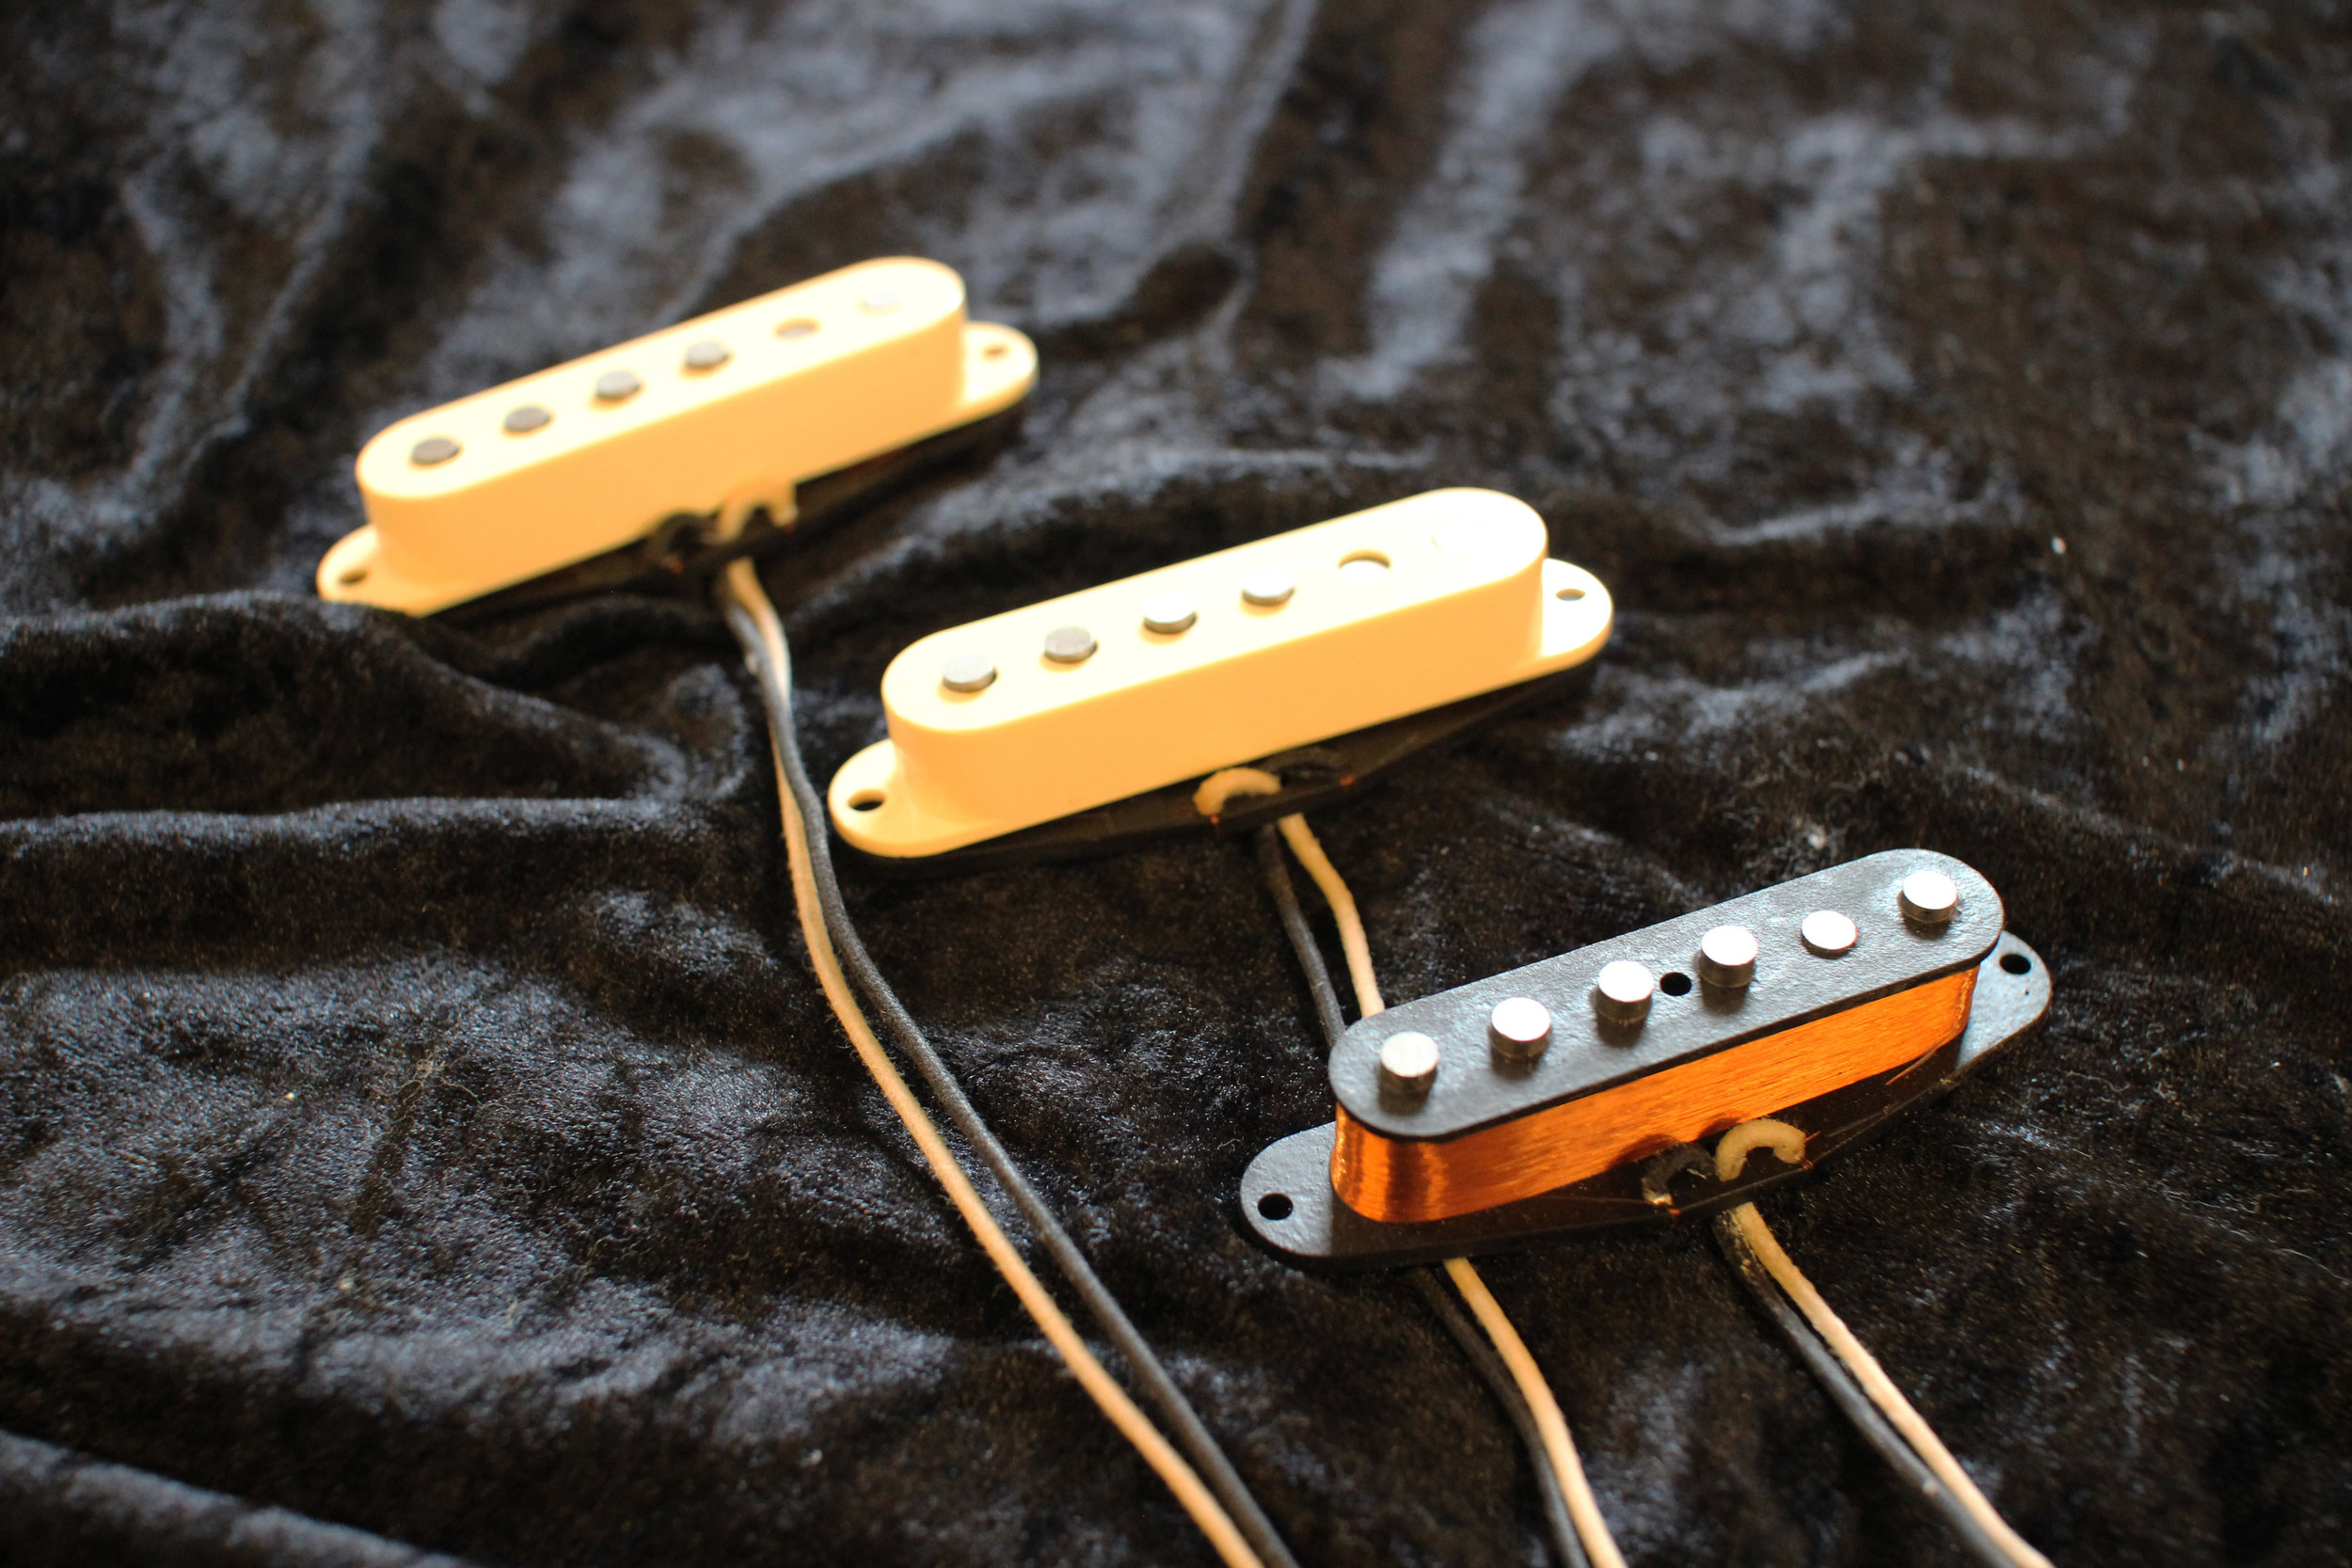 '62 SLABBER - Based on the early 60's Pre-CBS era Strat Pickups. The '62 Slabber are slightly hotter than the 50's pickups and are also wound over Alnico 5 magnets, giving more definition and pick attack to warmer Roswood (Slab) Fingerboards.